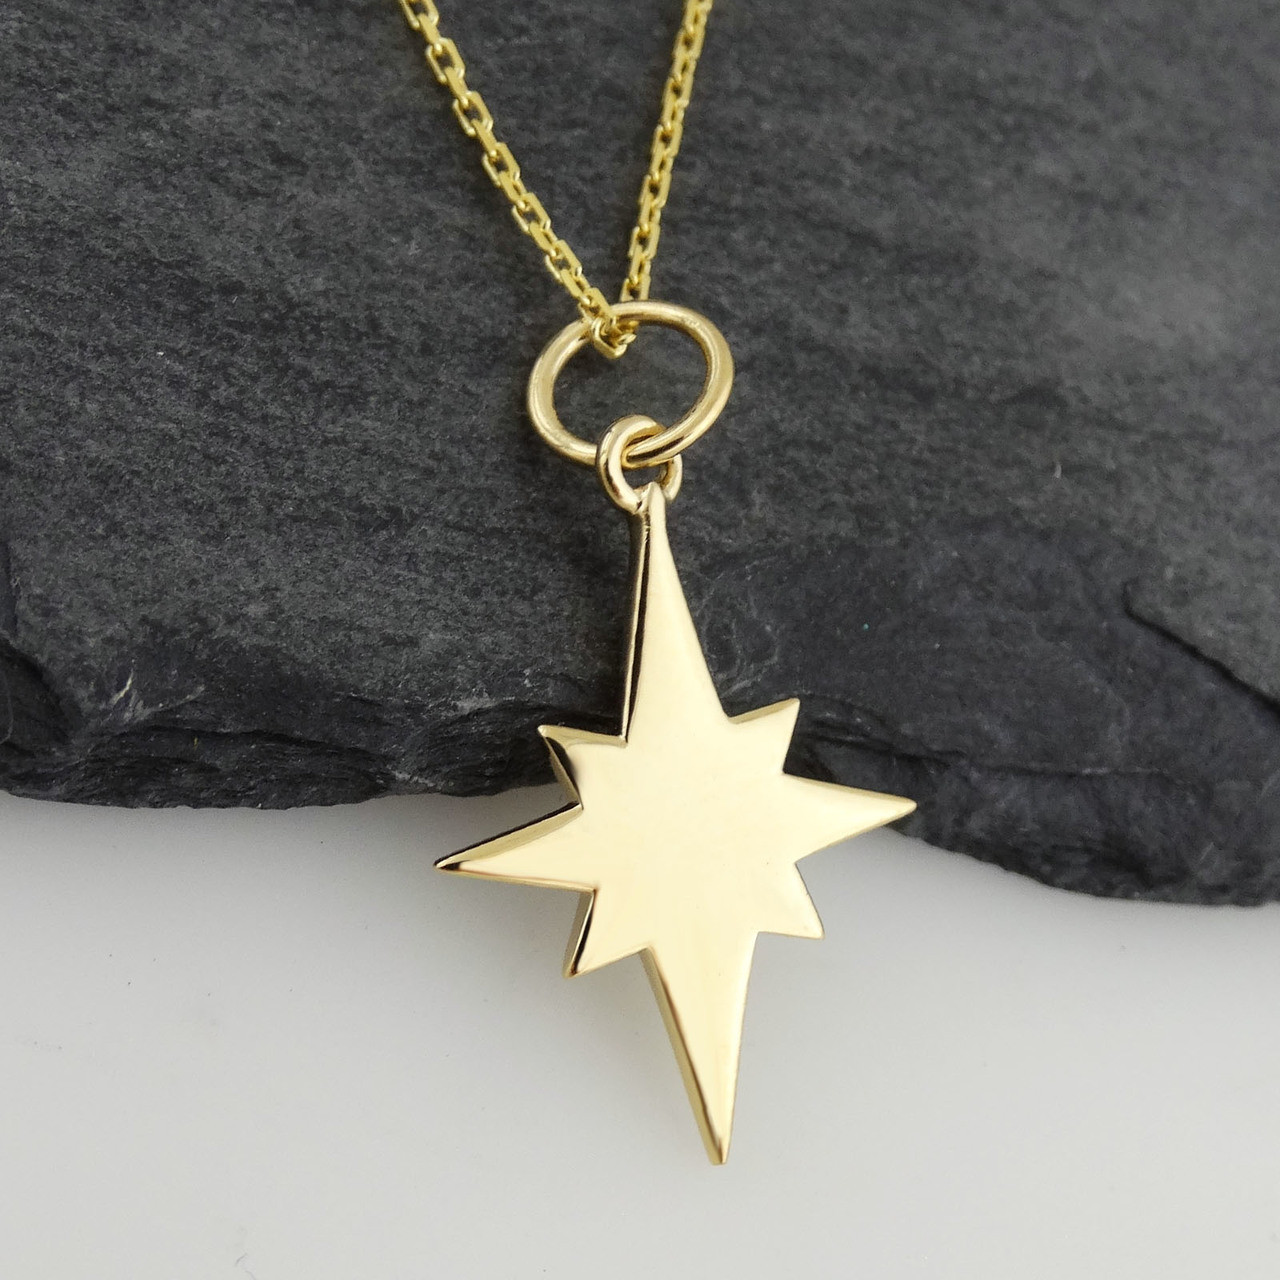 working pendant silver compass star necklace real sterling north